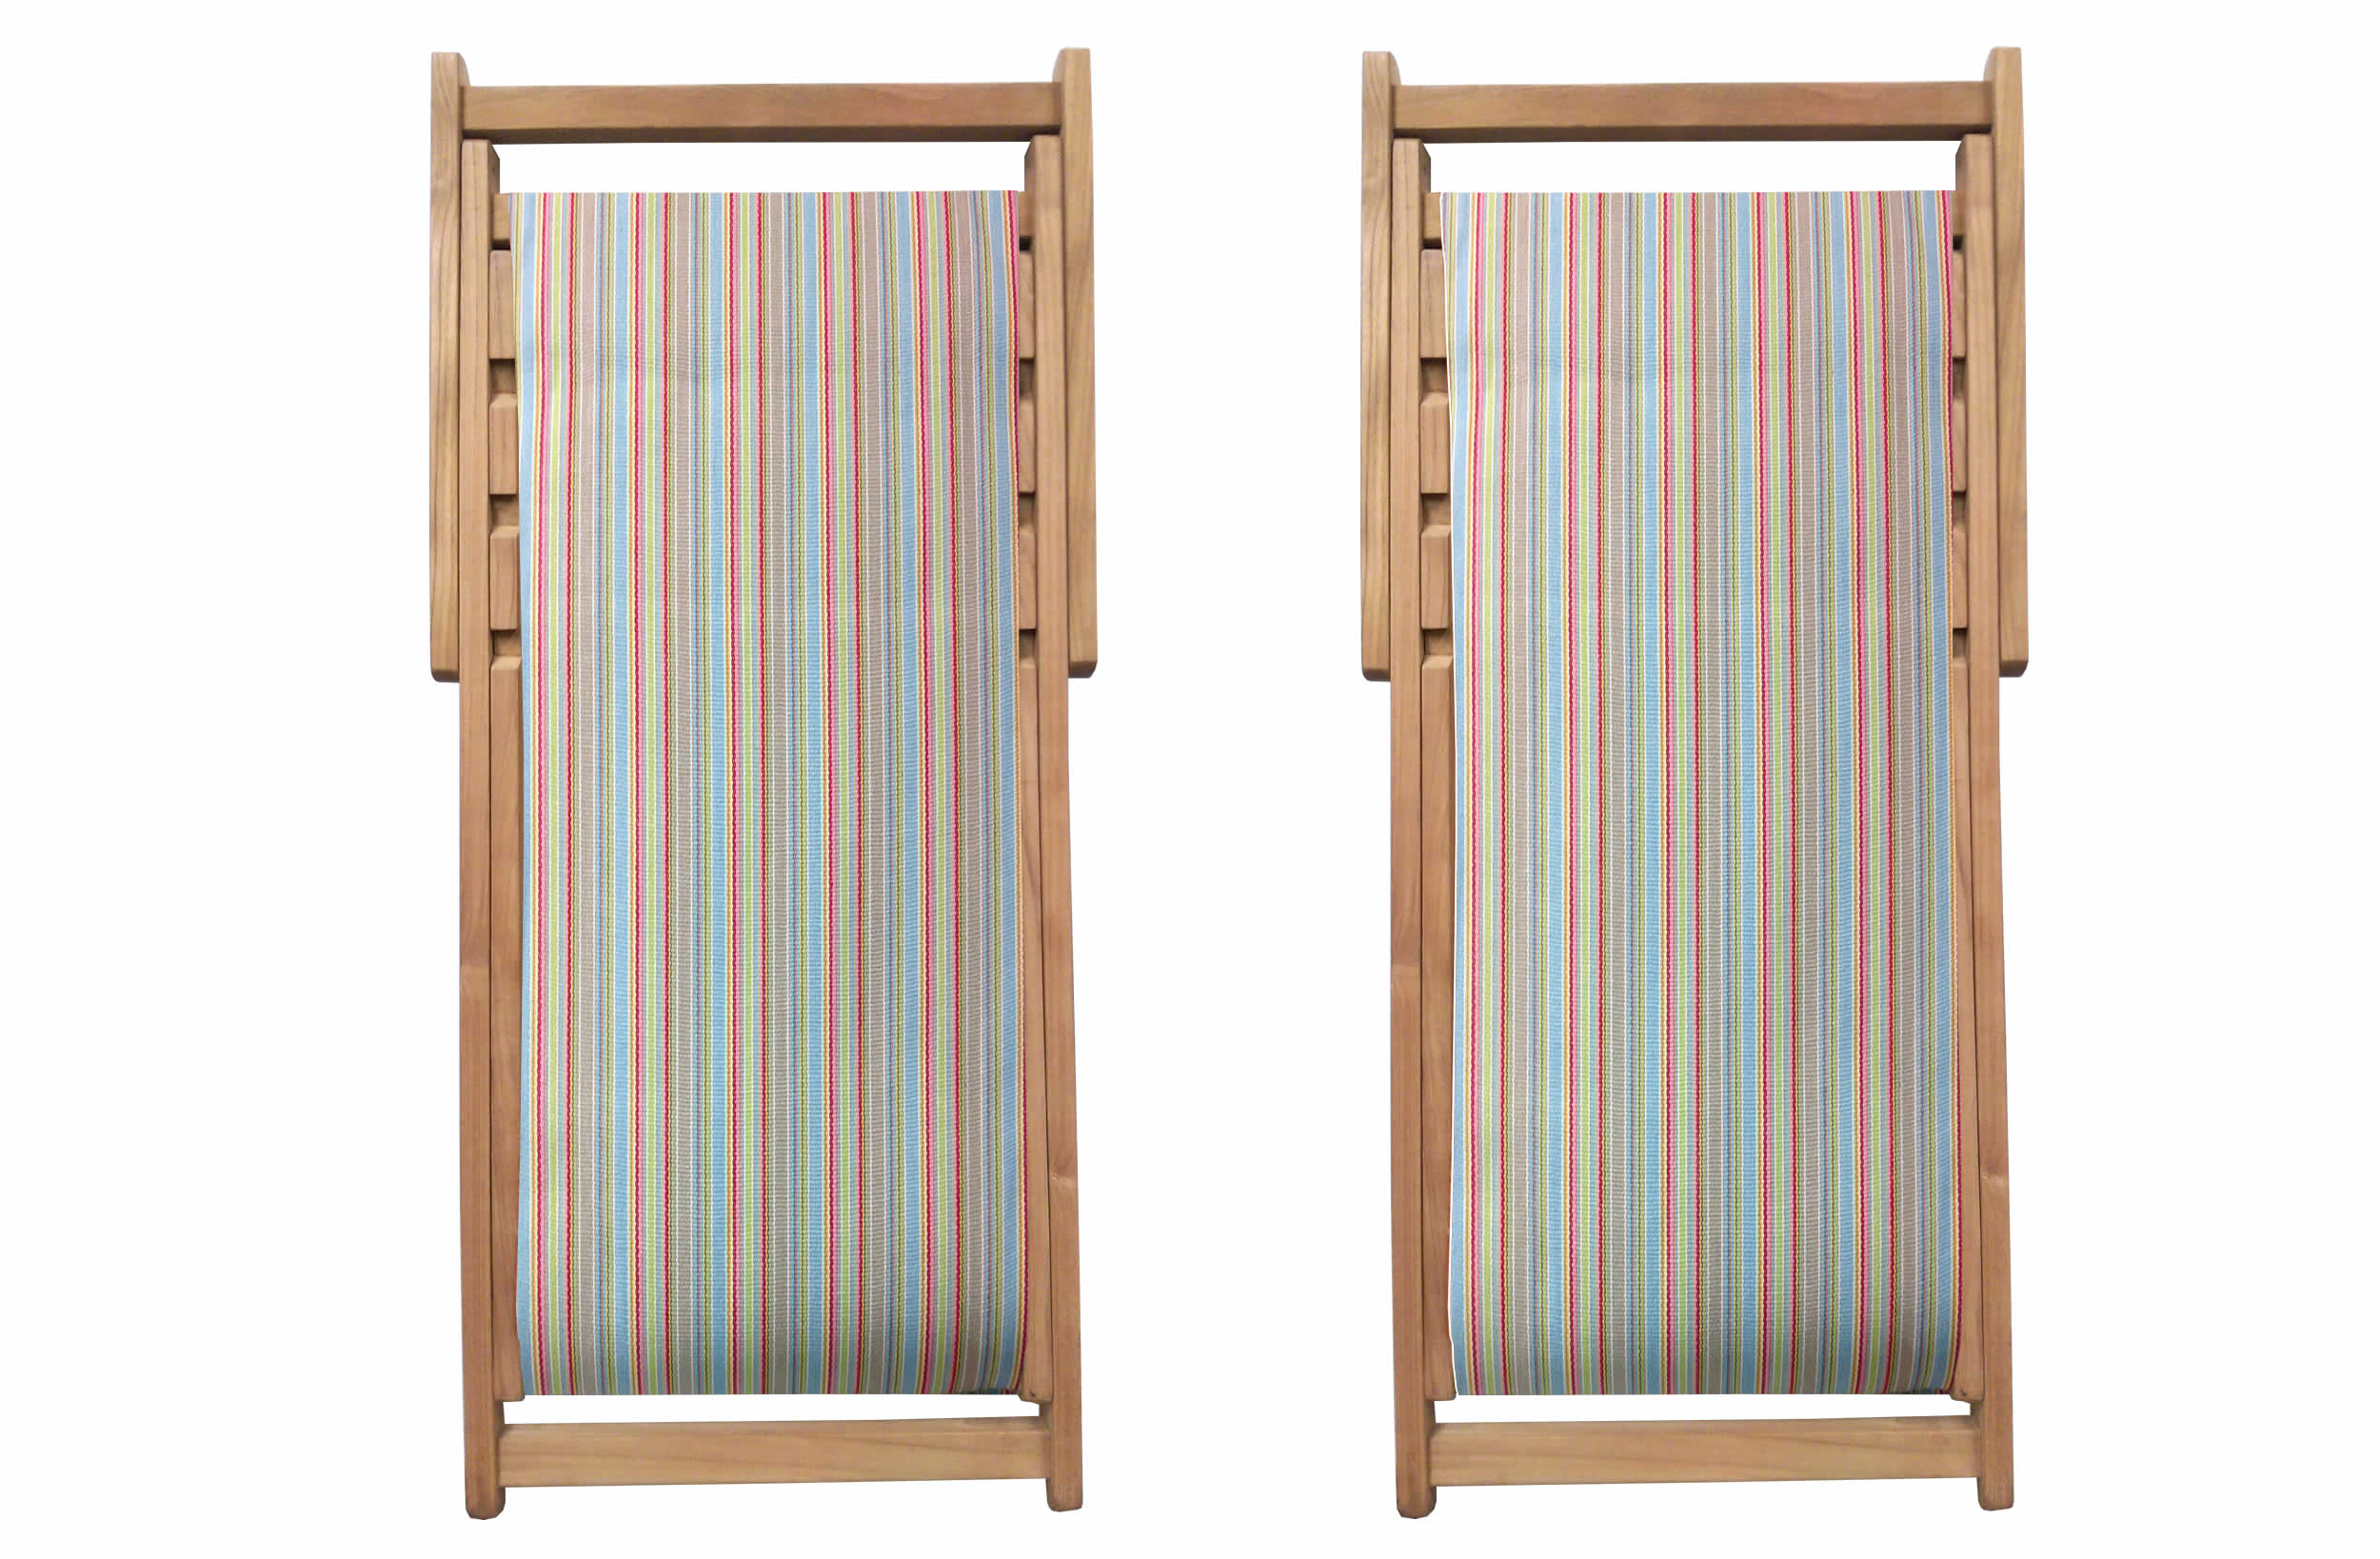 Cricket Deckchairs | Folding Wooden Deck Chairs Cricket Stripe